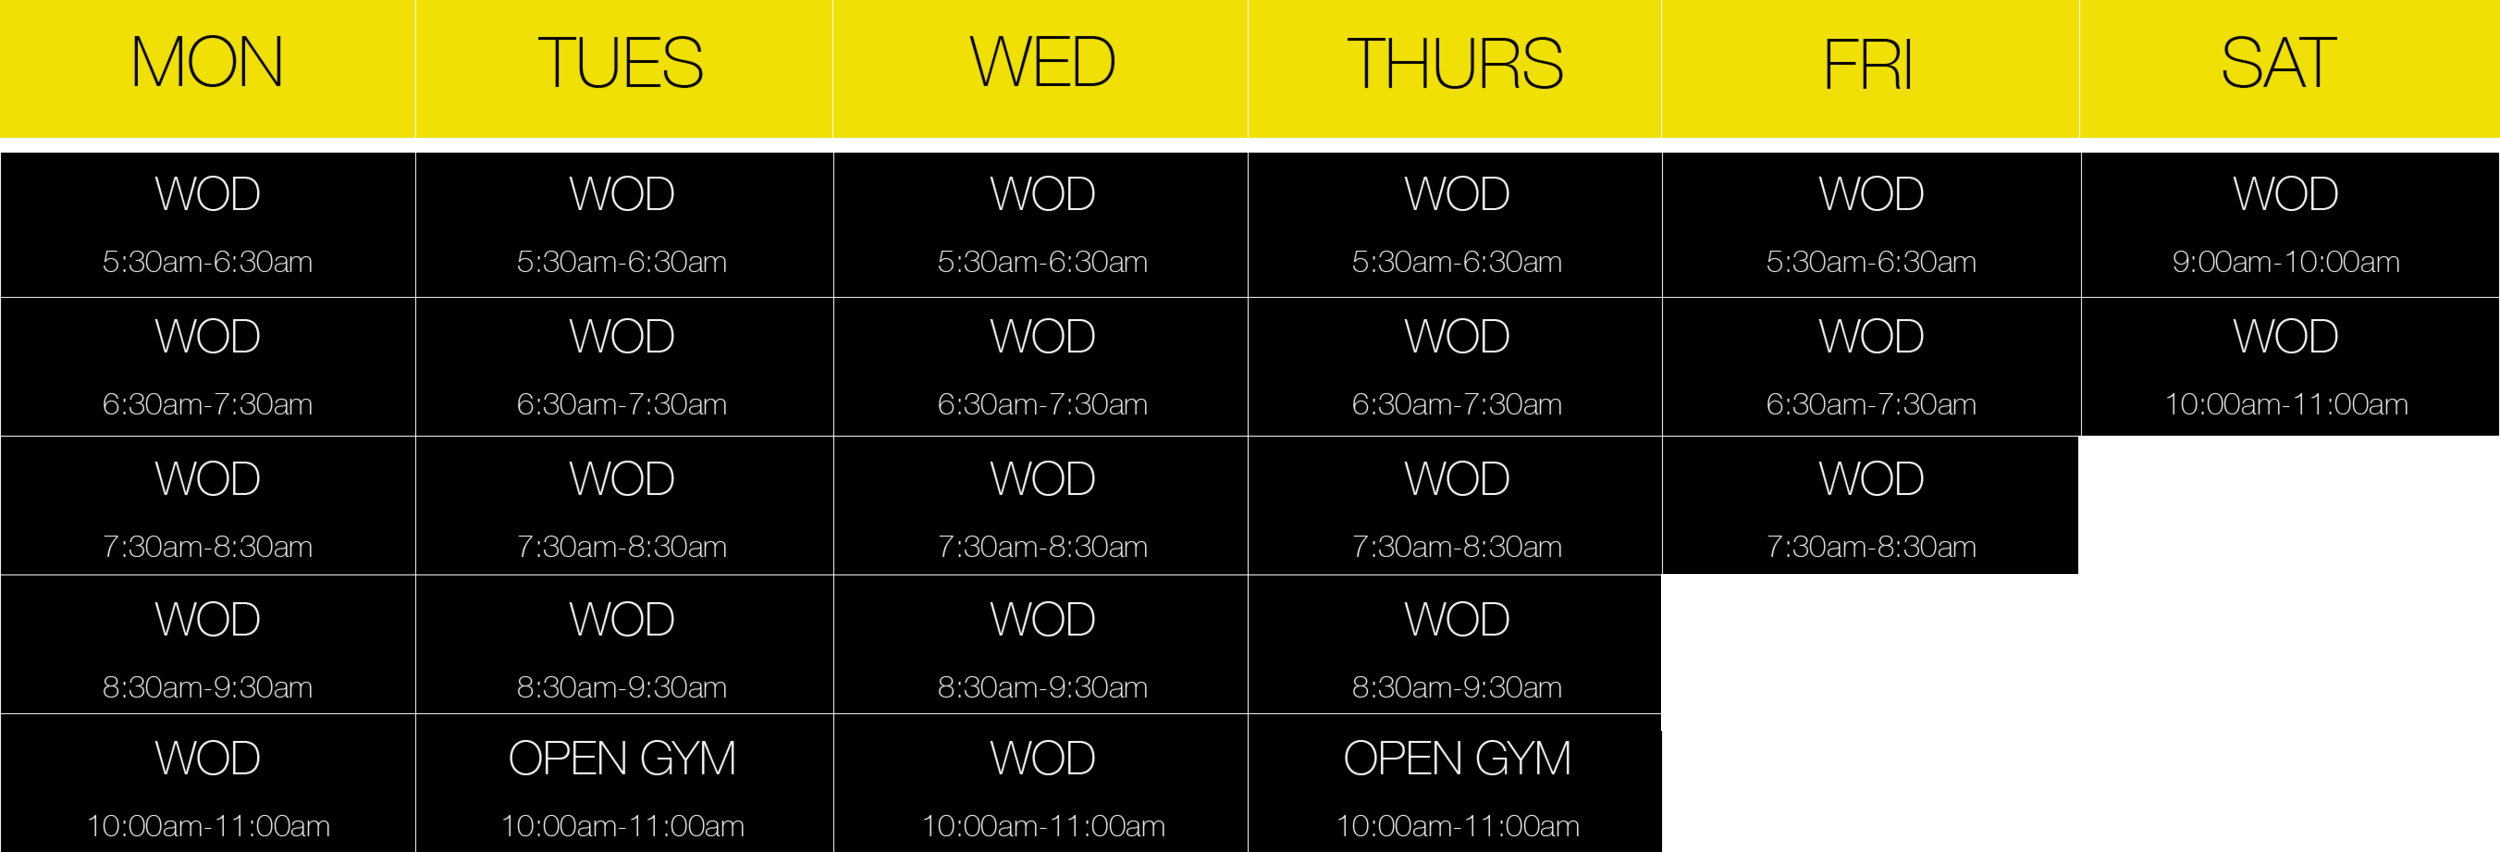 Crossfit Morning Schedule - JD Tweak.png